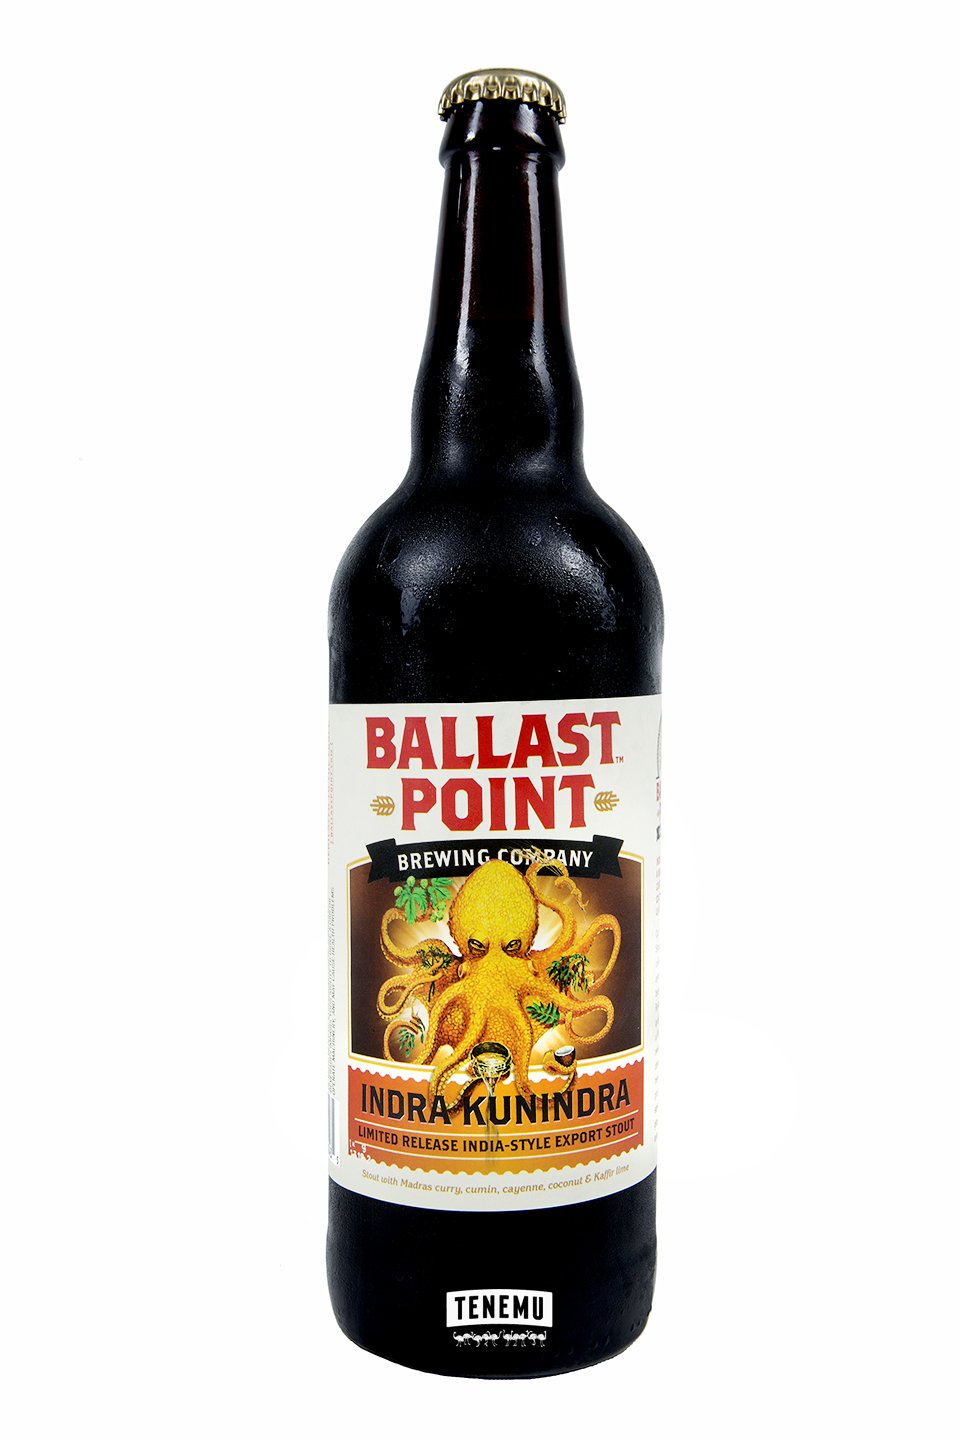 Ballast Point Indra Kunindra bottle